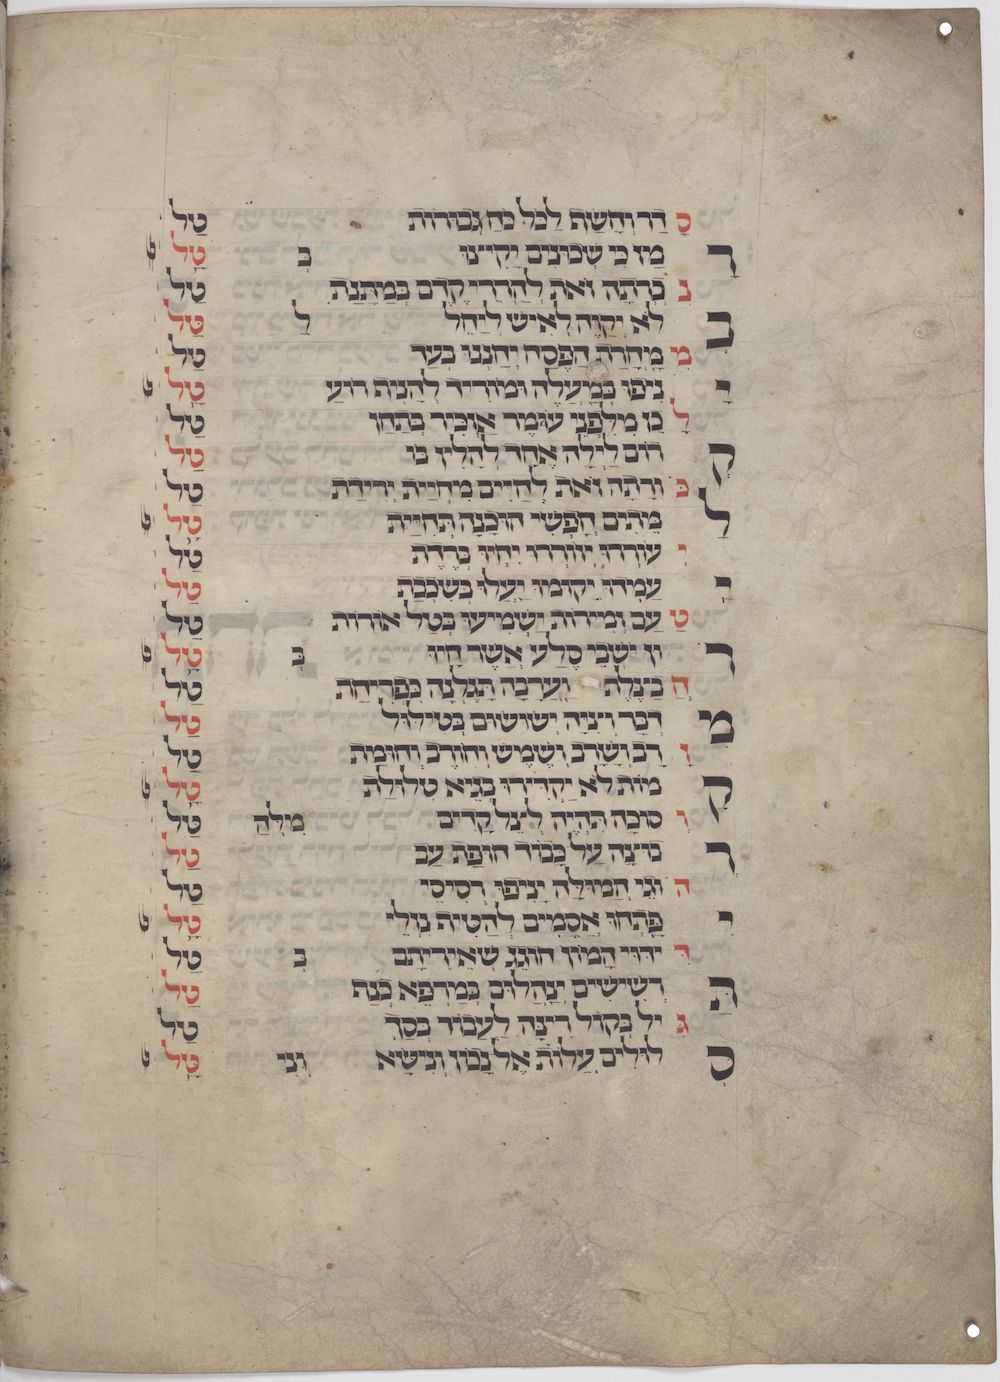 manuscript page from a medieval jewish text